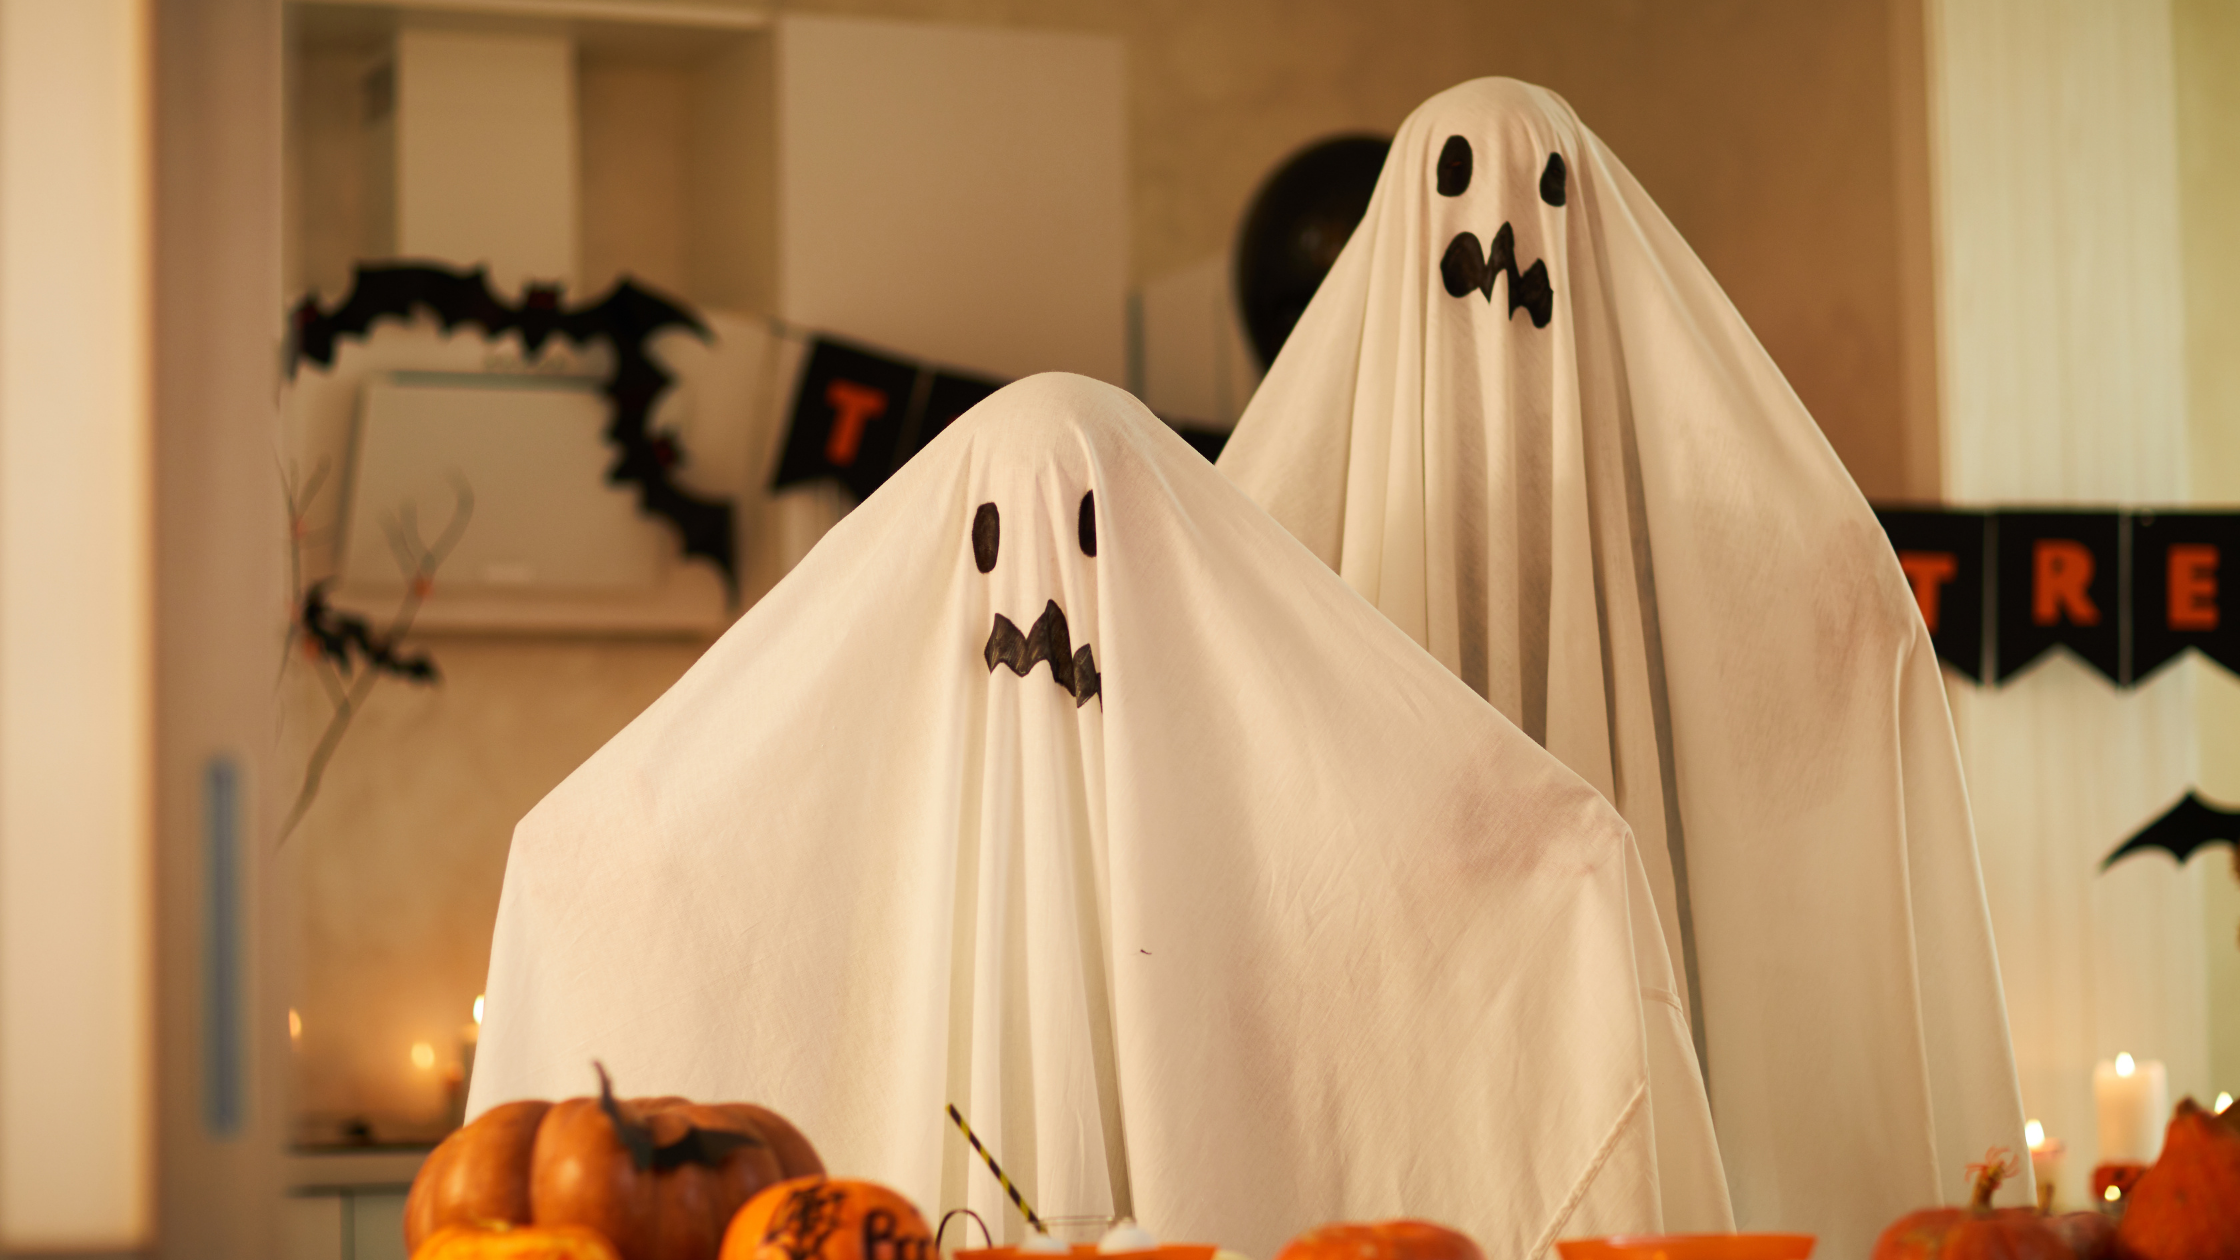 Two people dressed as ghosts to represent how donors can ghost nonprofits due to weak relationships.